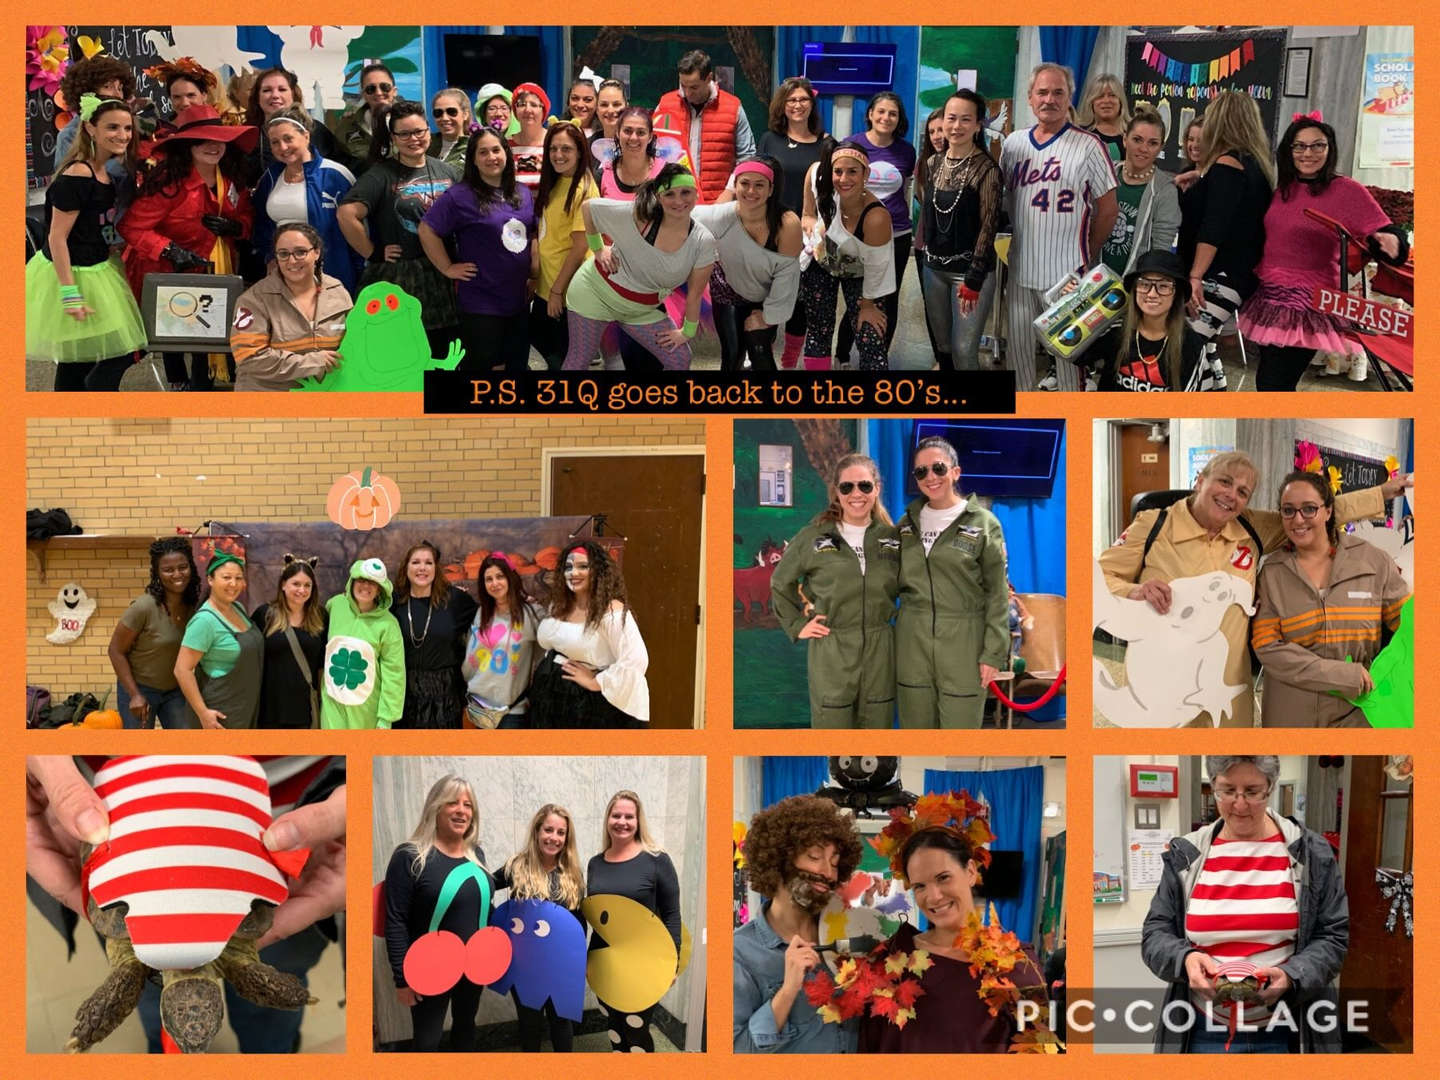 Harvest Festival 2019...P.S. 31Q staff goes back to the 1980's!